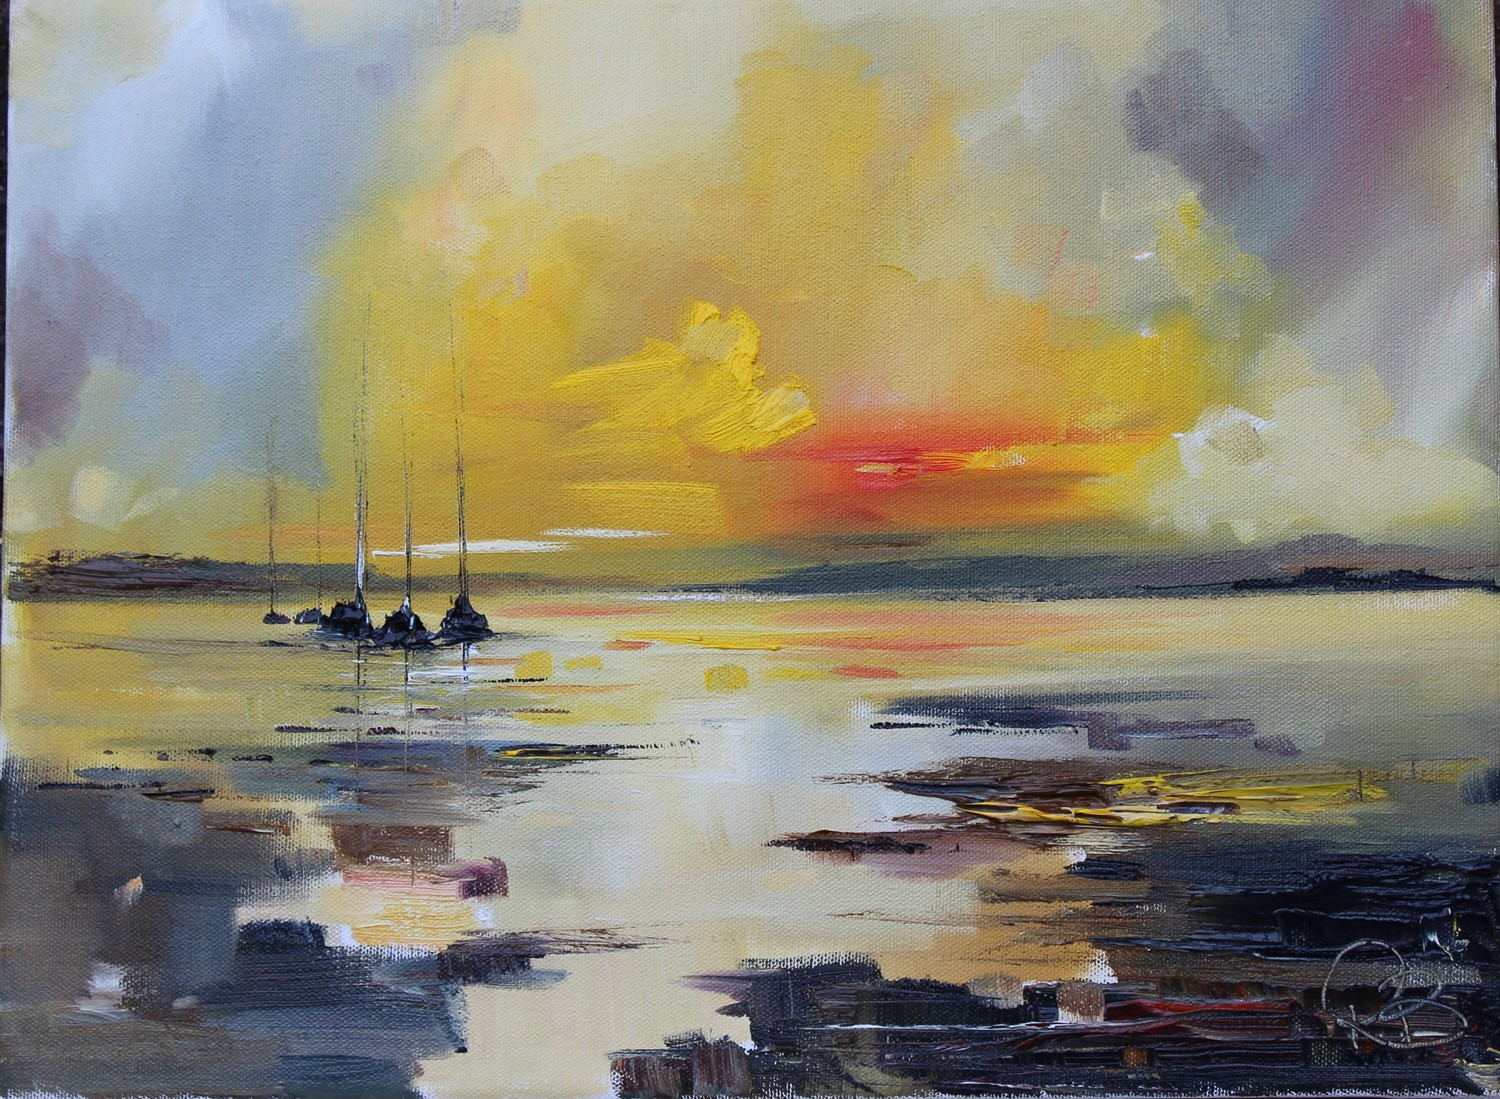 'Flooded with Light' by artist Rosanne Barr